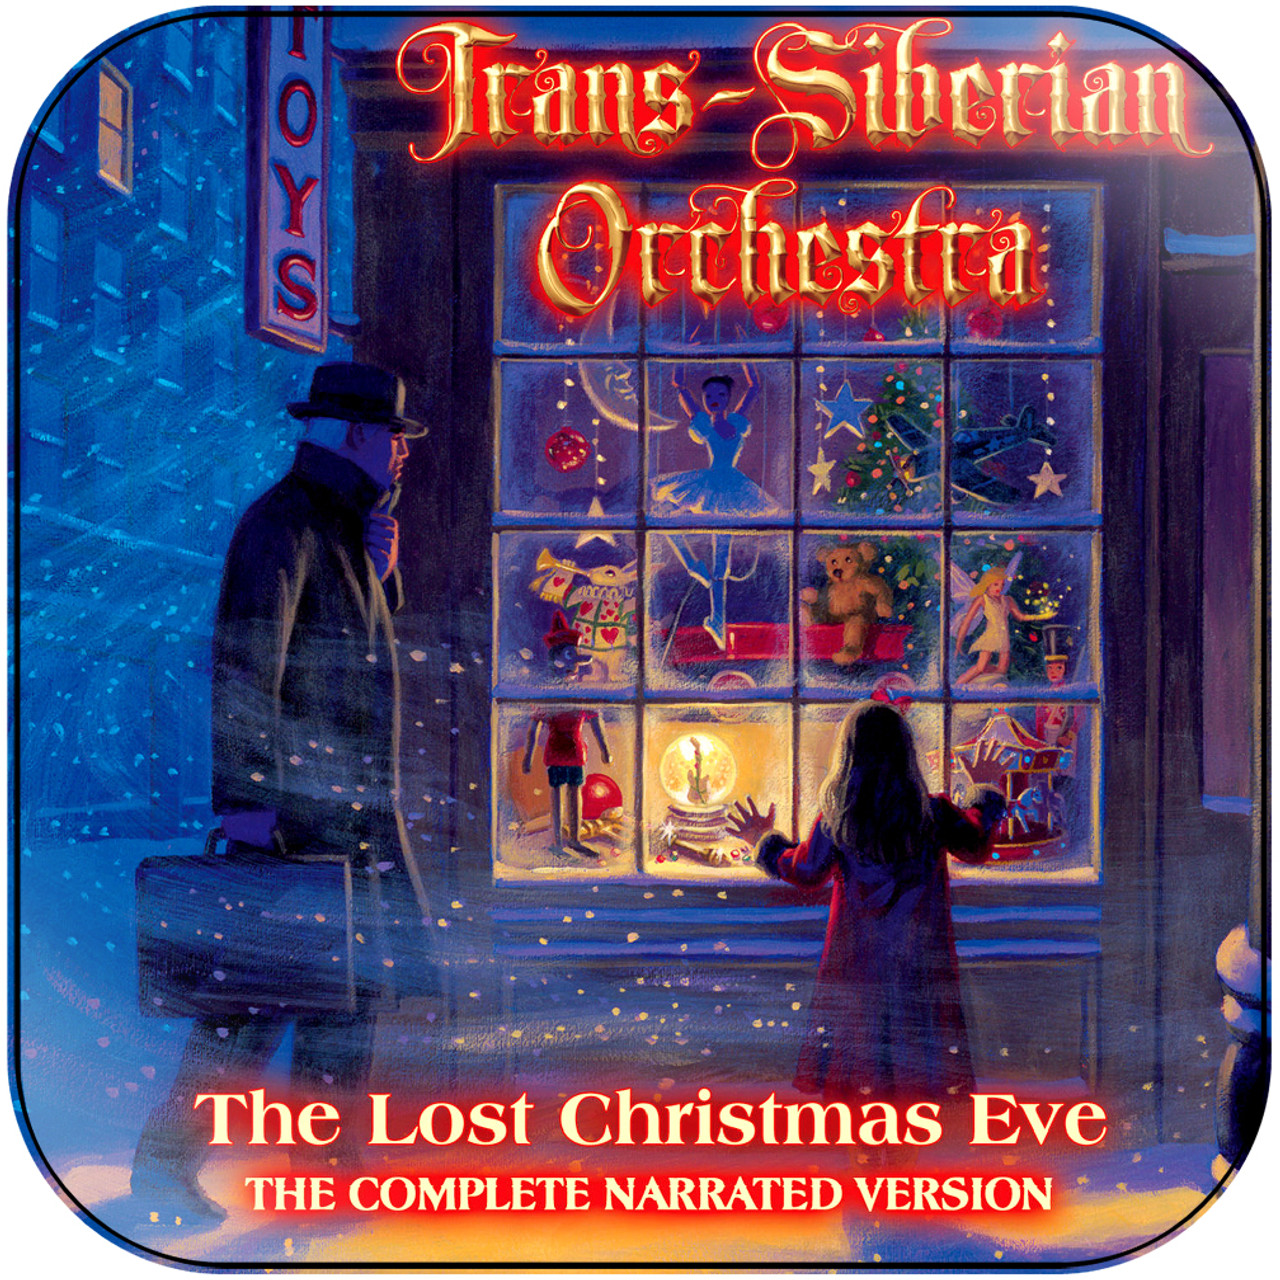 Trans Siberian Christmas.Trans Siberian Orchestra The Lost Christmas Eve 2 Album Cover Sticker